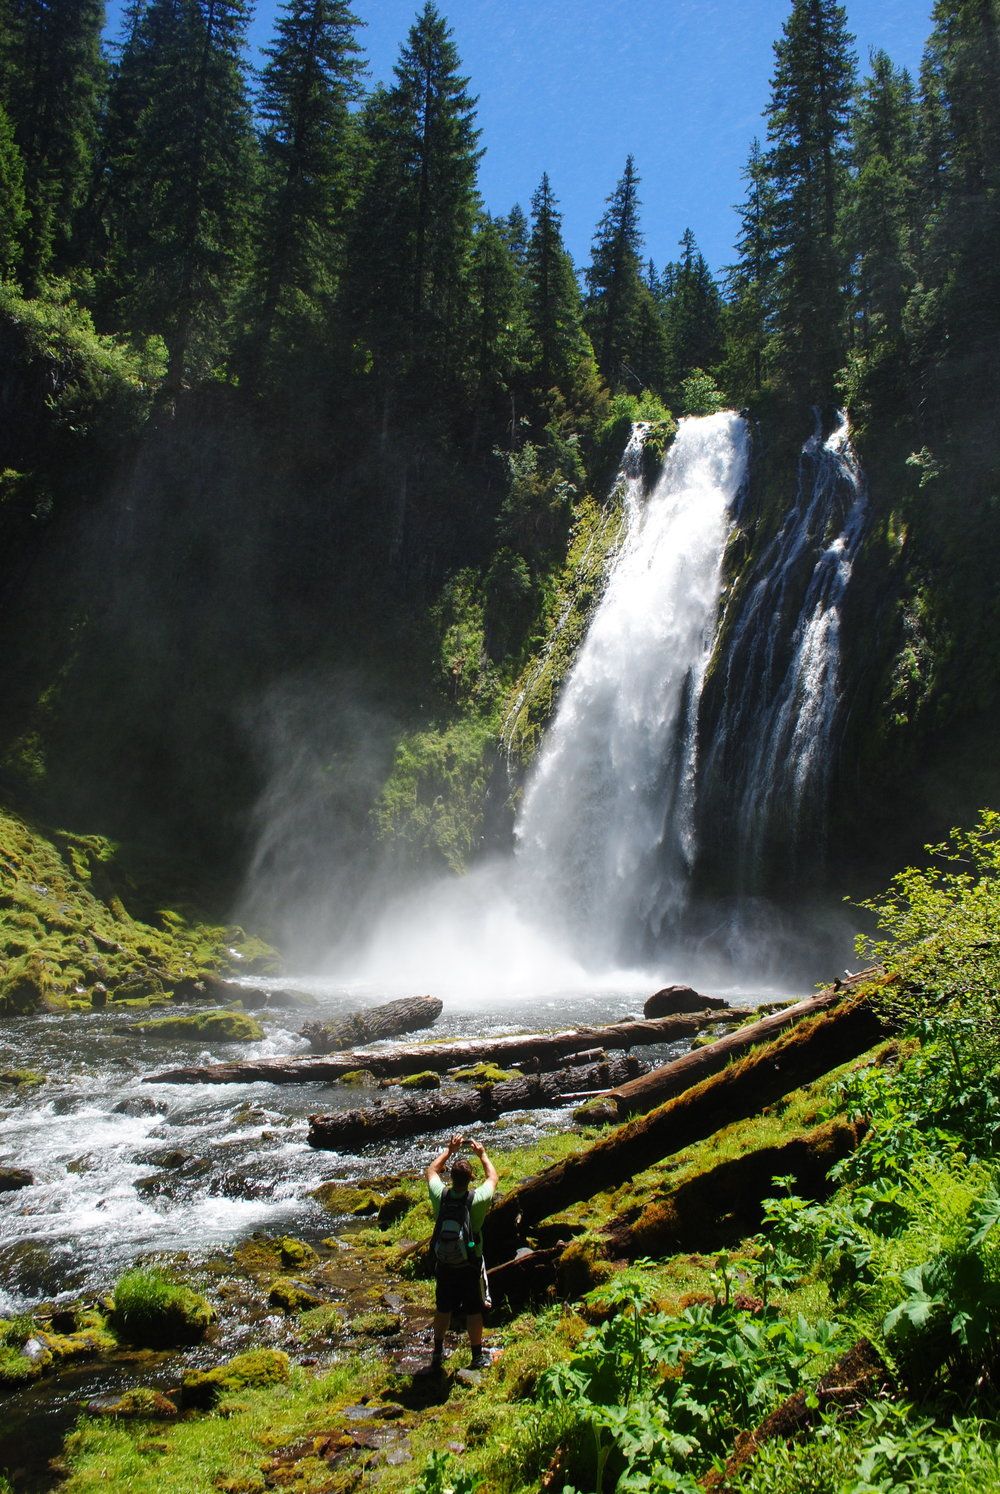 FOUR WATERFALLS, ONE DAY - HIKING ADVENTURES WITH KIDS - What to do in Southern Oregon - Things to do - Douglas County - Lemolo Falls